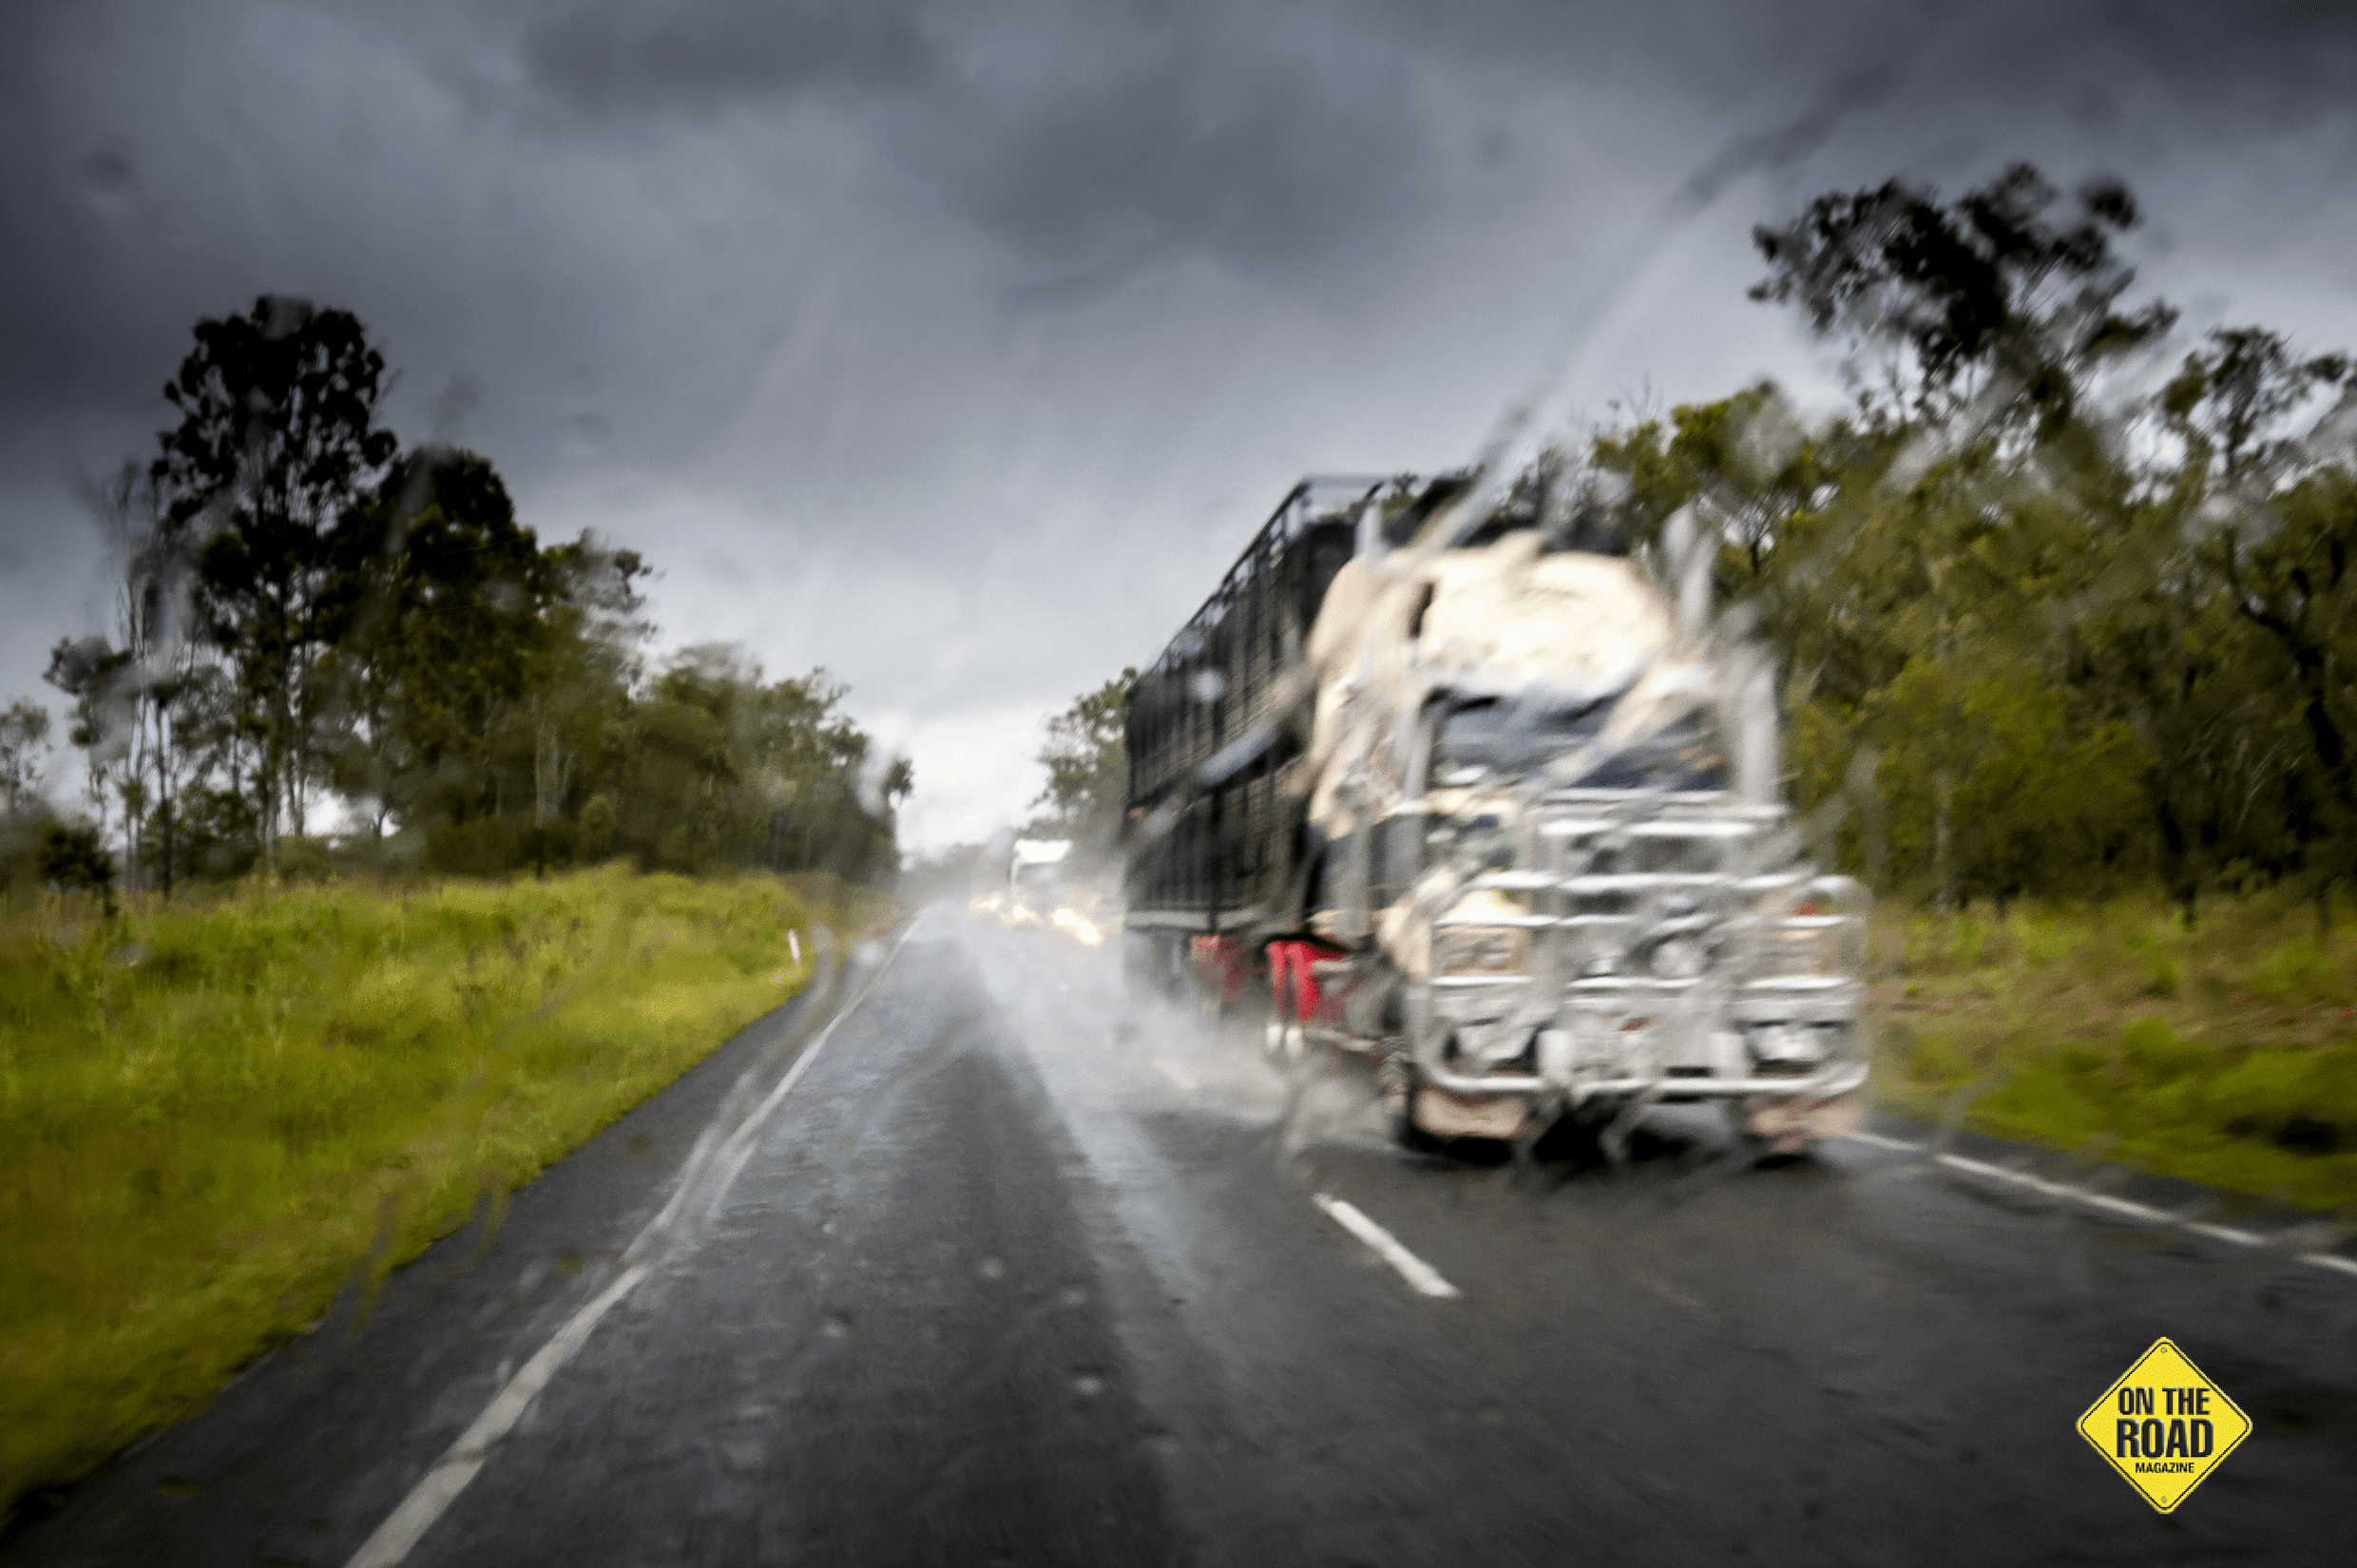 Across the top, cyclones and wet season storms can strike anytime